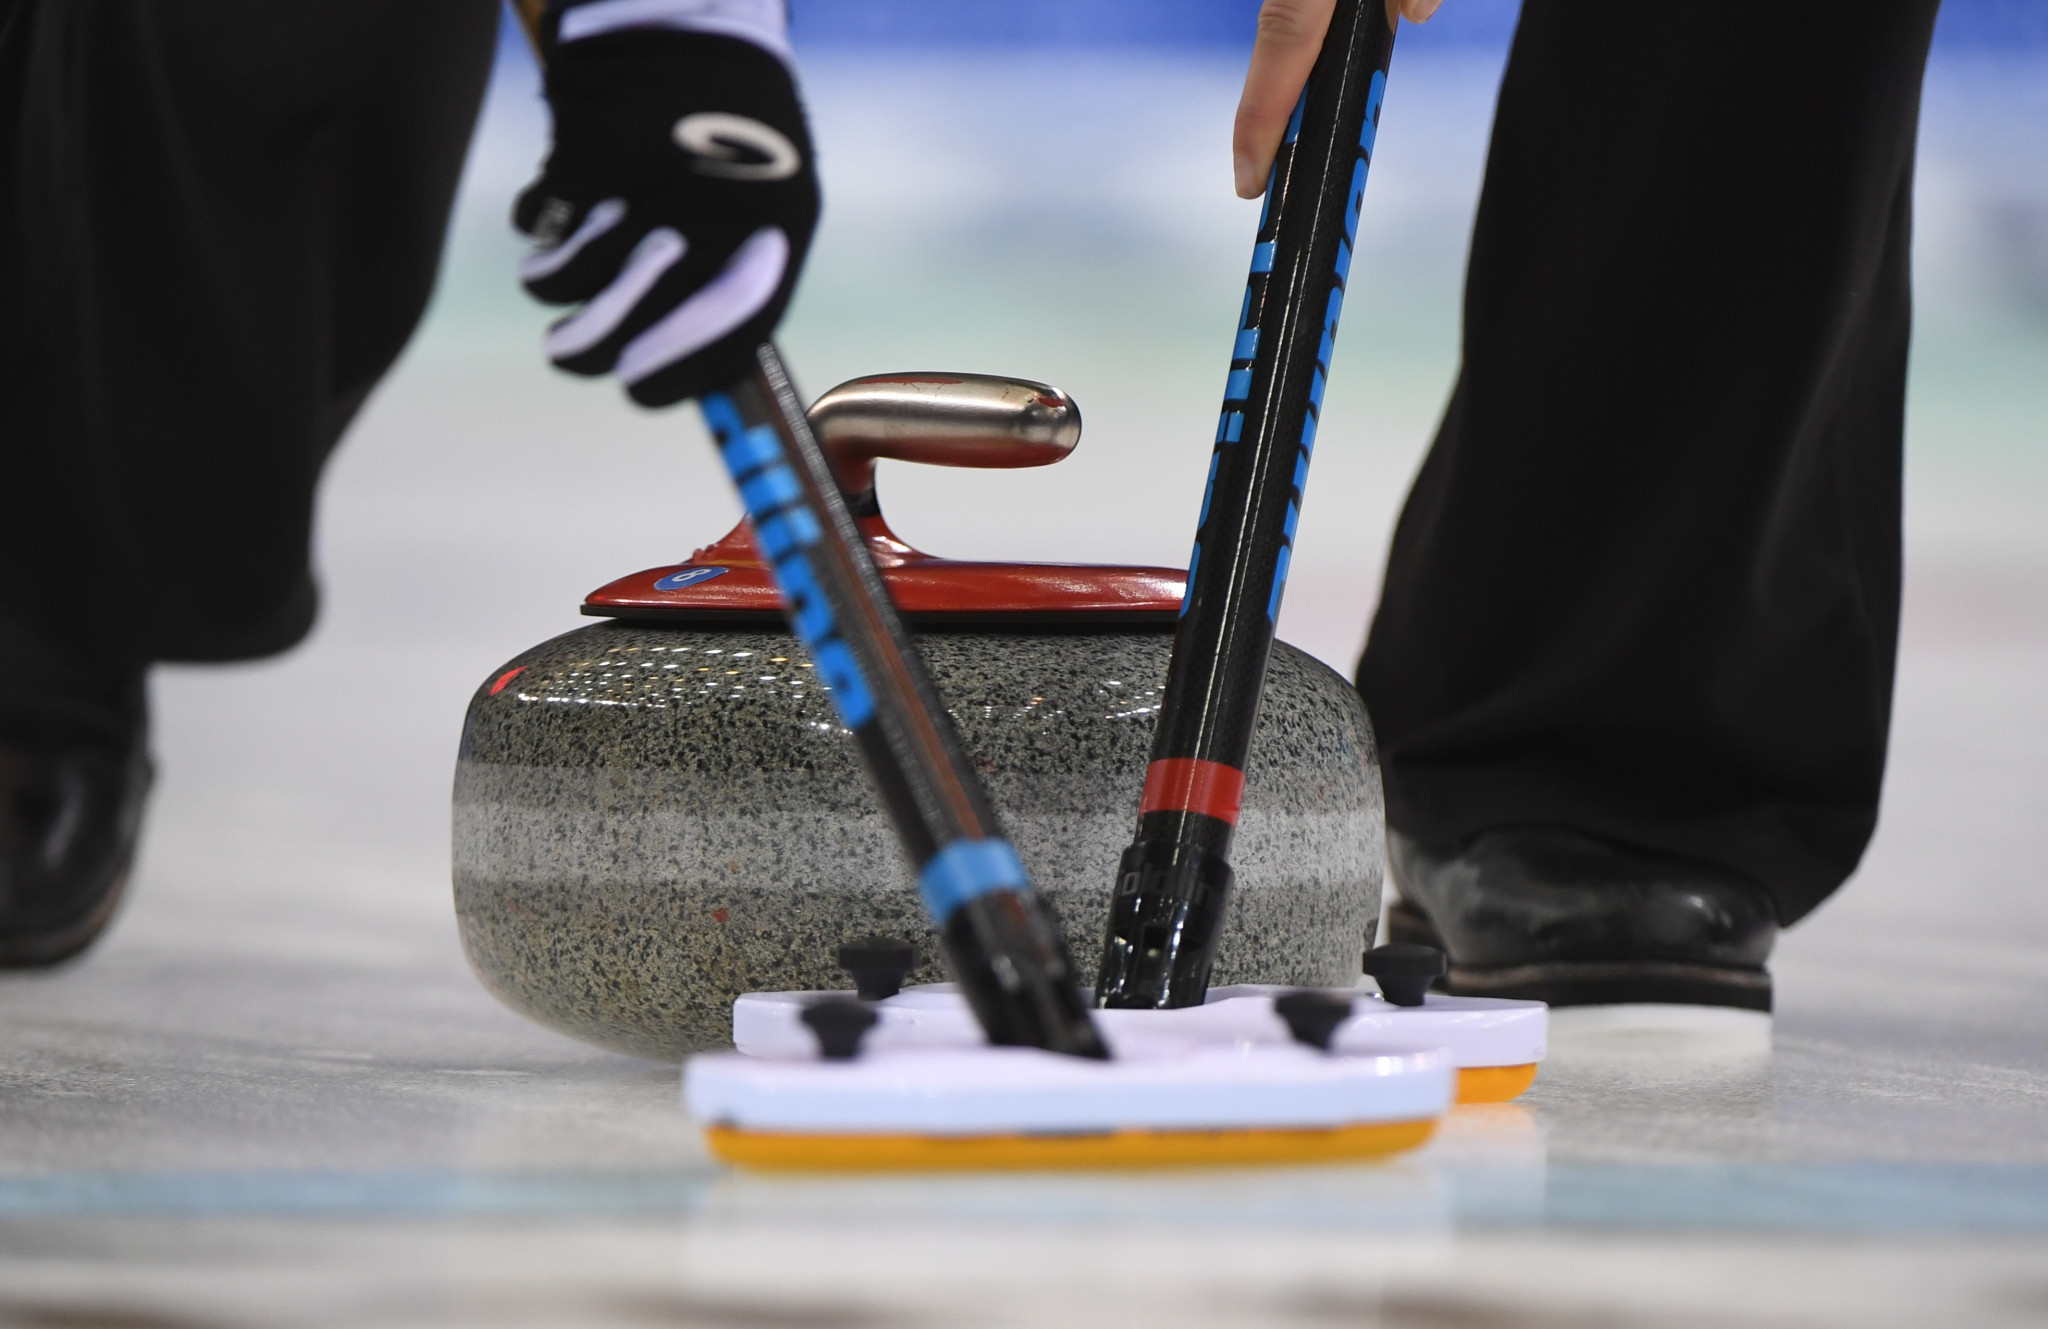 The World Curling Federation has partnered with V-ZUG for the next three non-Canadian World Championships ©Getty Images